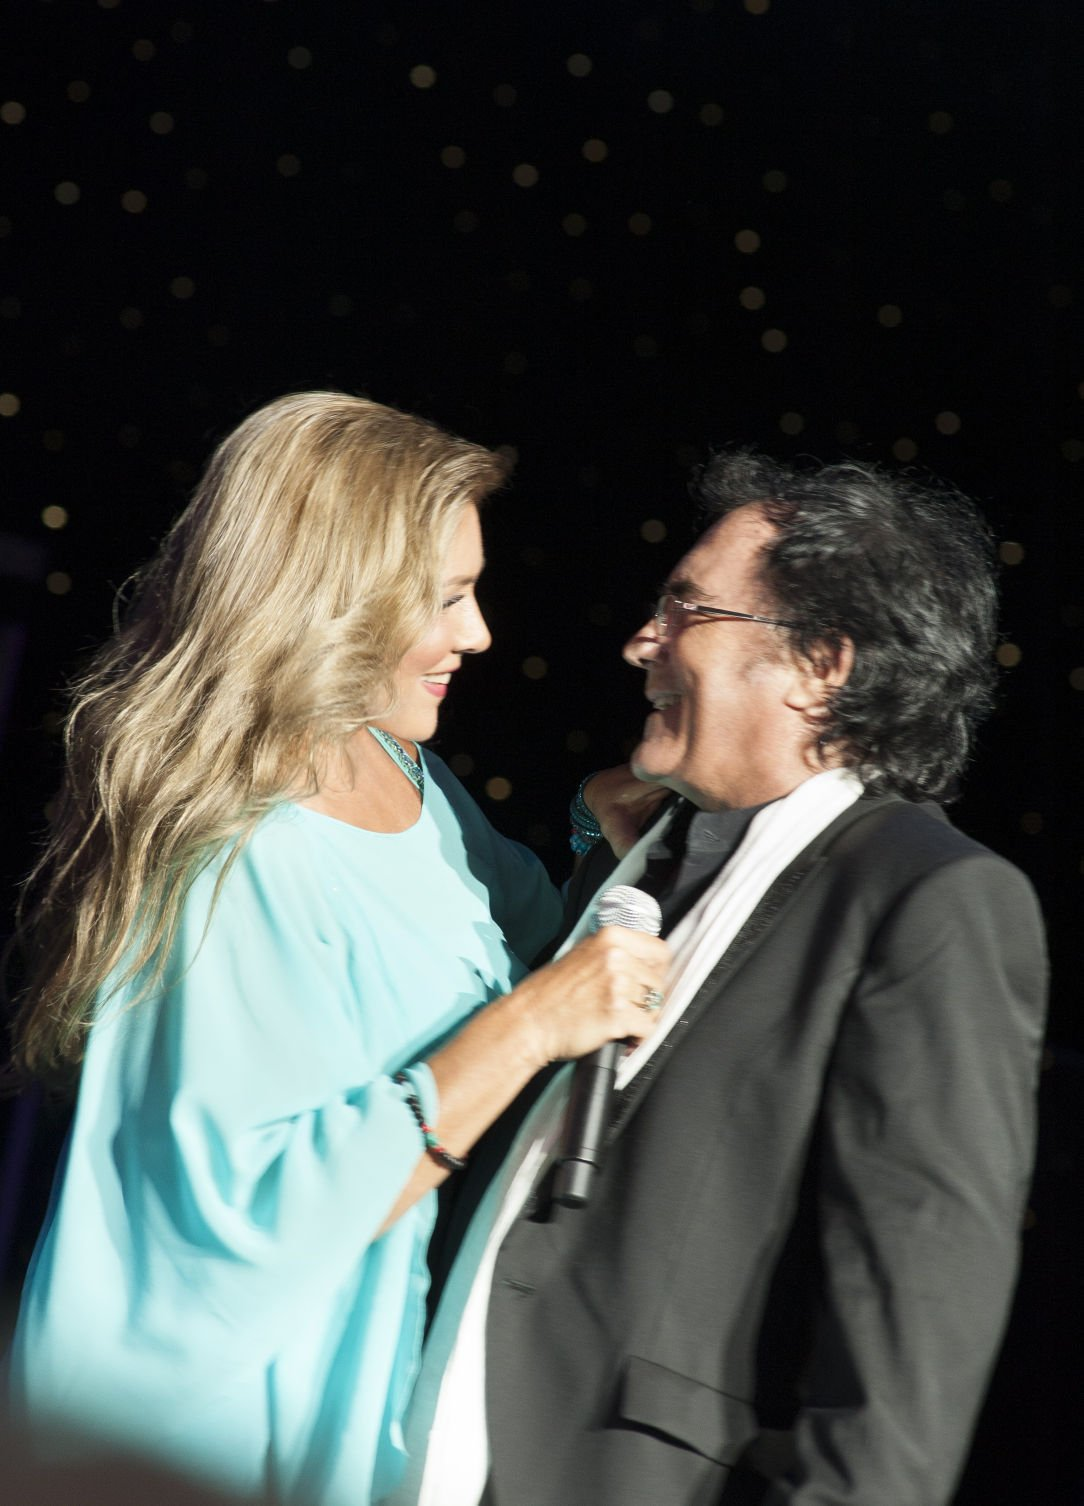 Romina power and al bano bring encore tour to trop for Al bano romina power